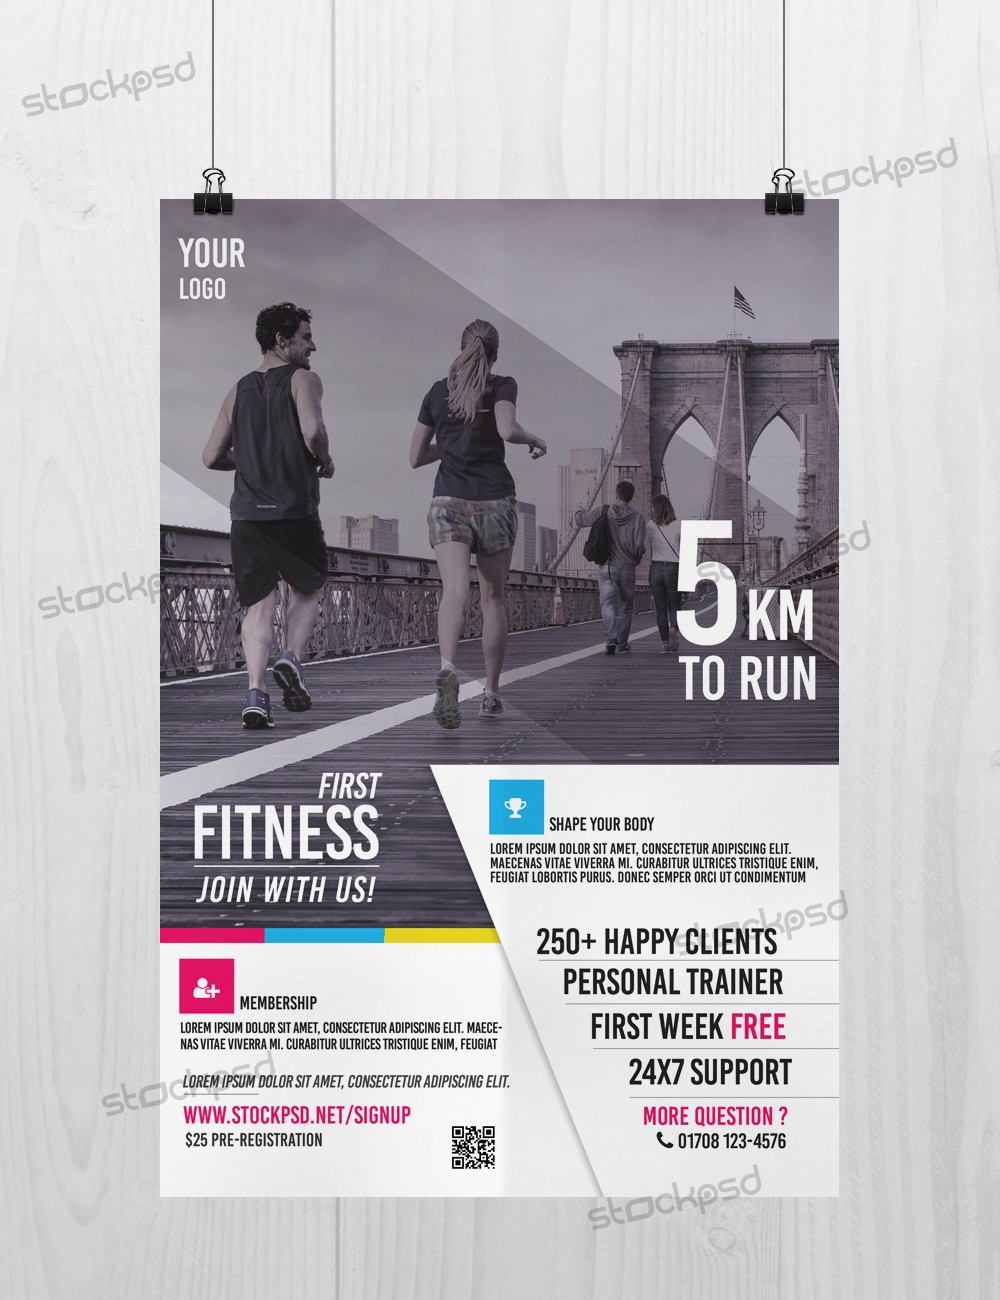 Stockpsd Free PSD Flyers Brochures and more – Free Fitness Flyer Templates